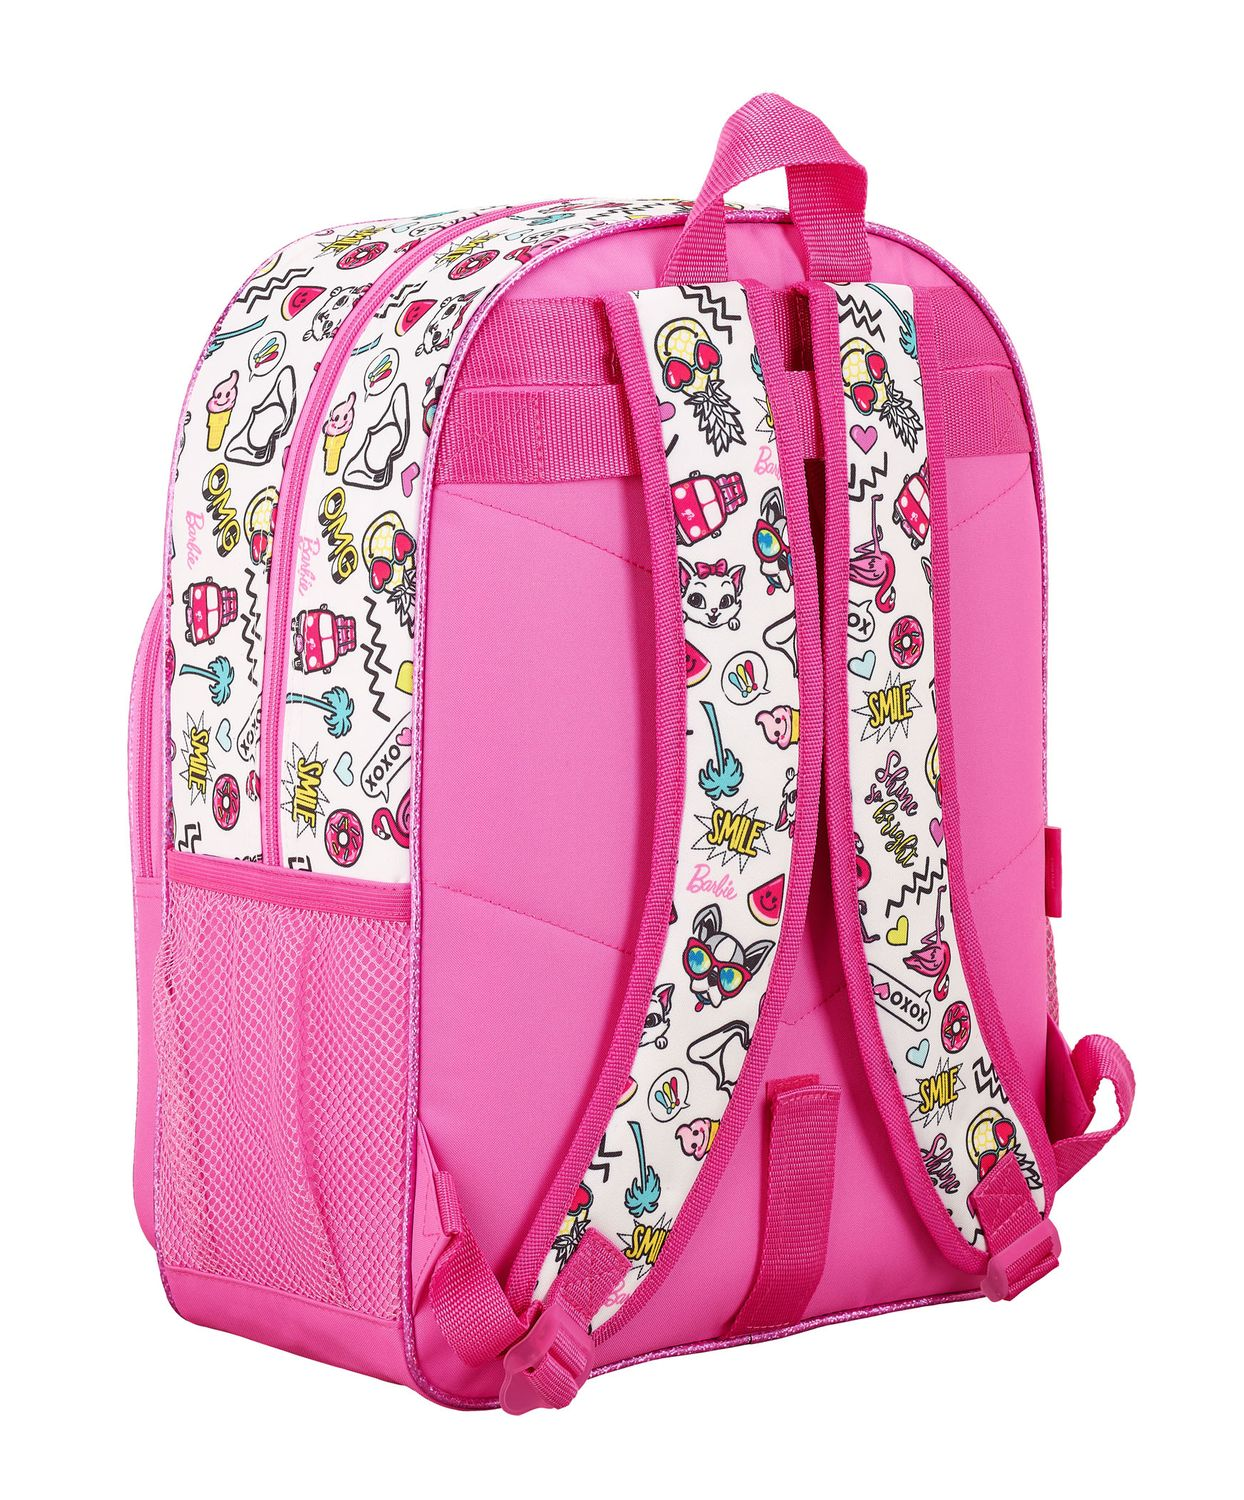 Rucksack Backpack 42 cm Barbie Celebration – image 2